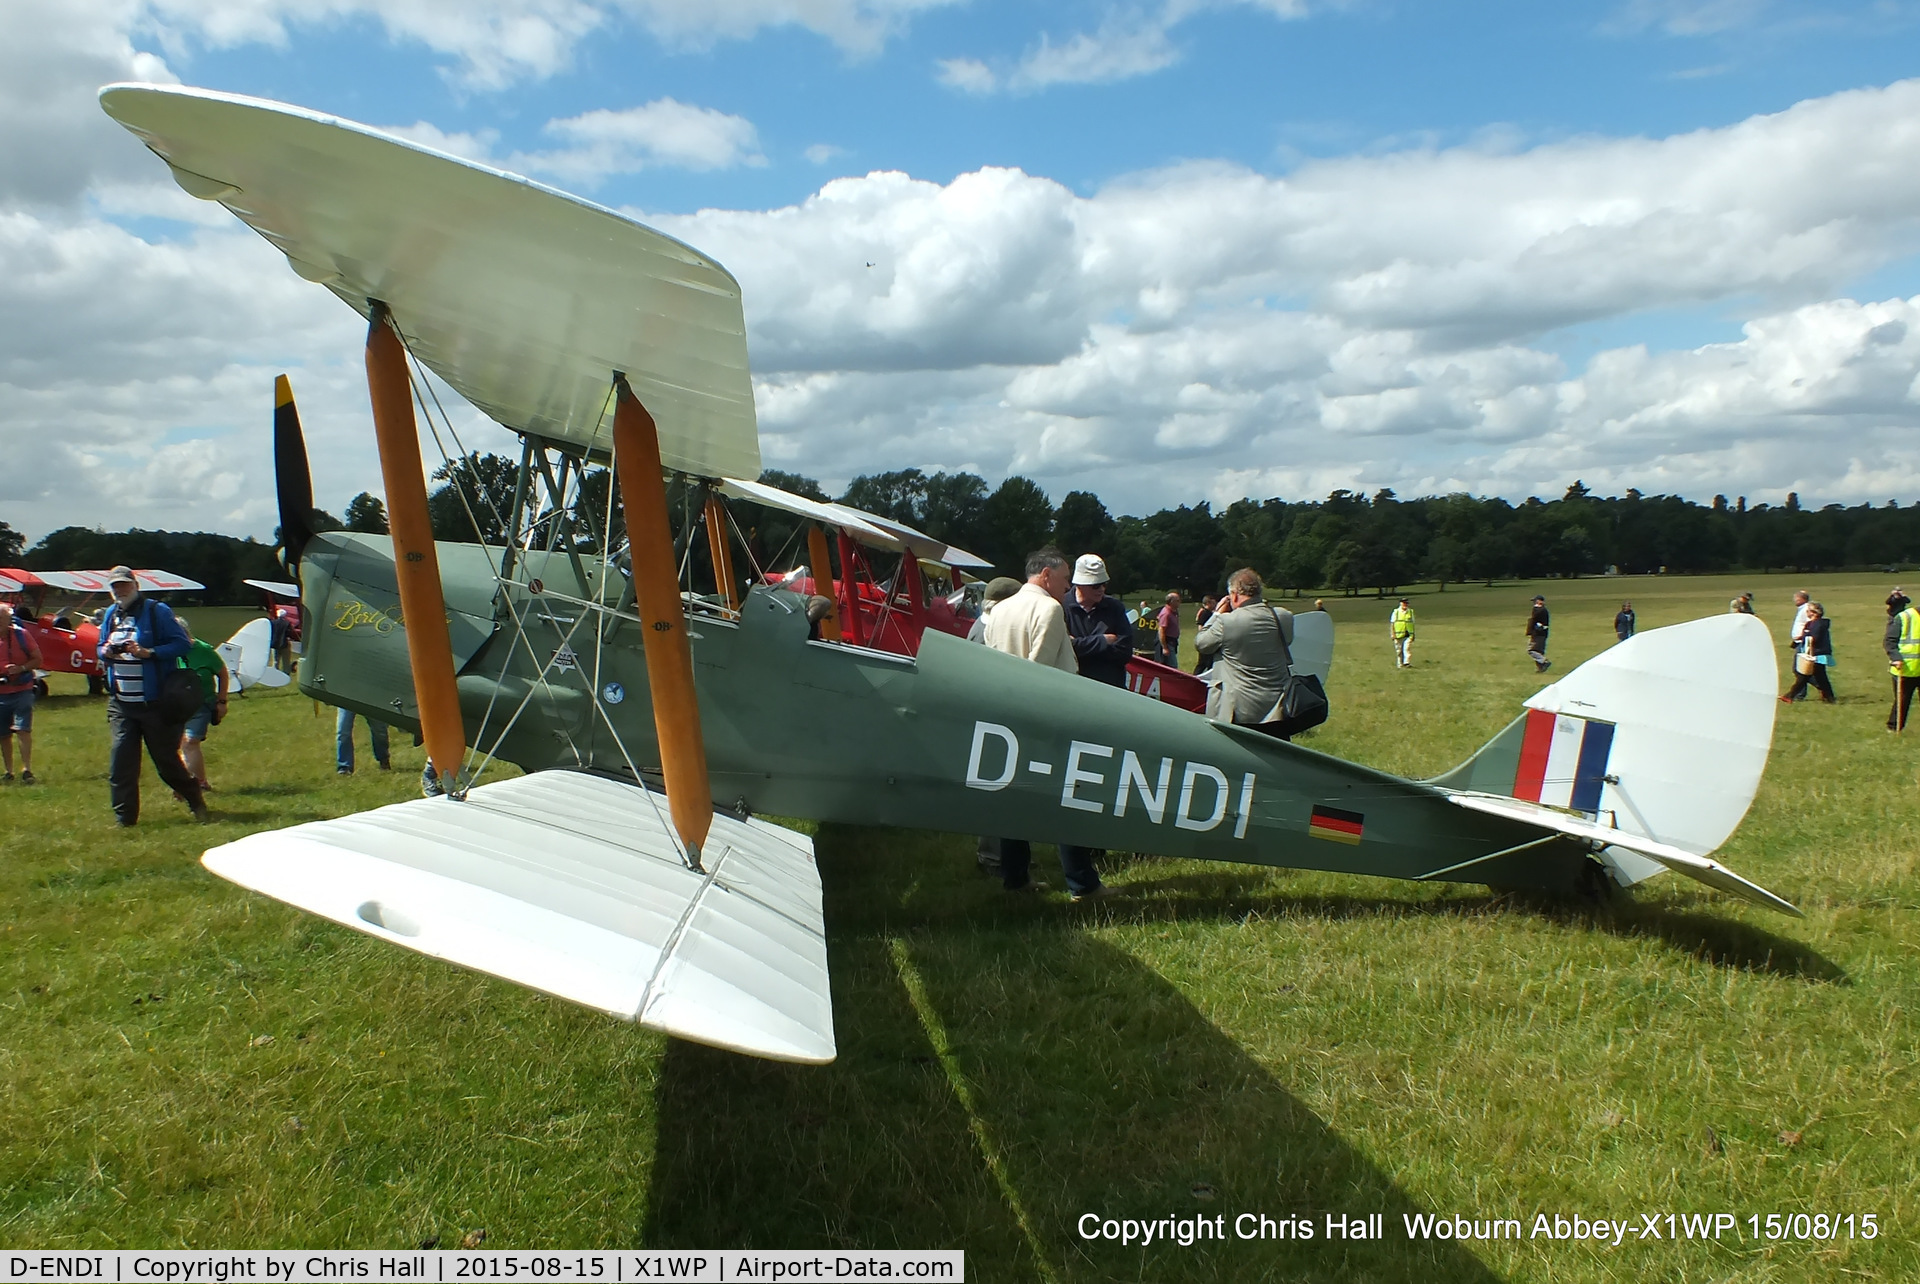 D-ENDI, 1939 De Havilland DH-82A Tiger Moth II C/N 82335, International Moth Rally at Woburn Abbey 15/08/15